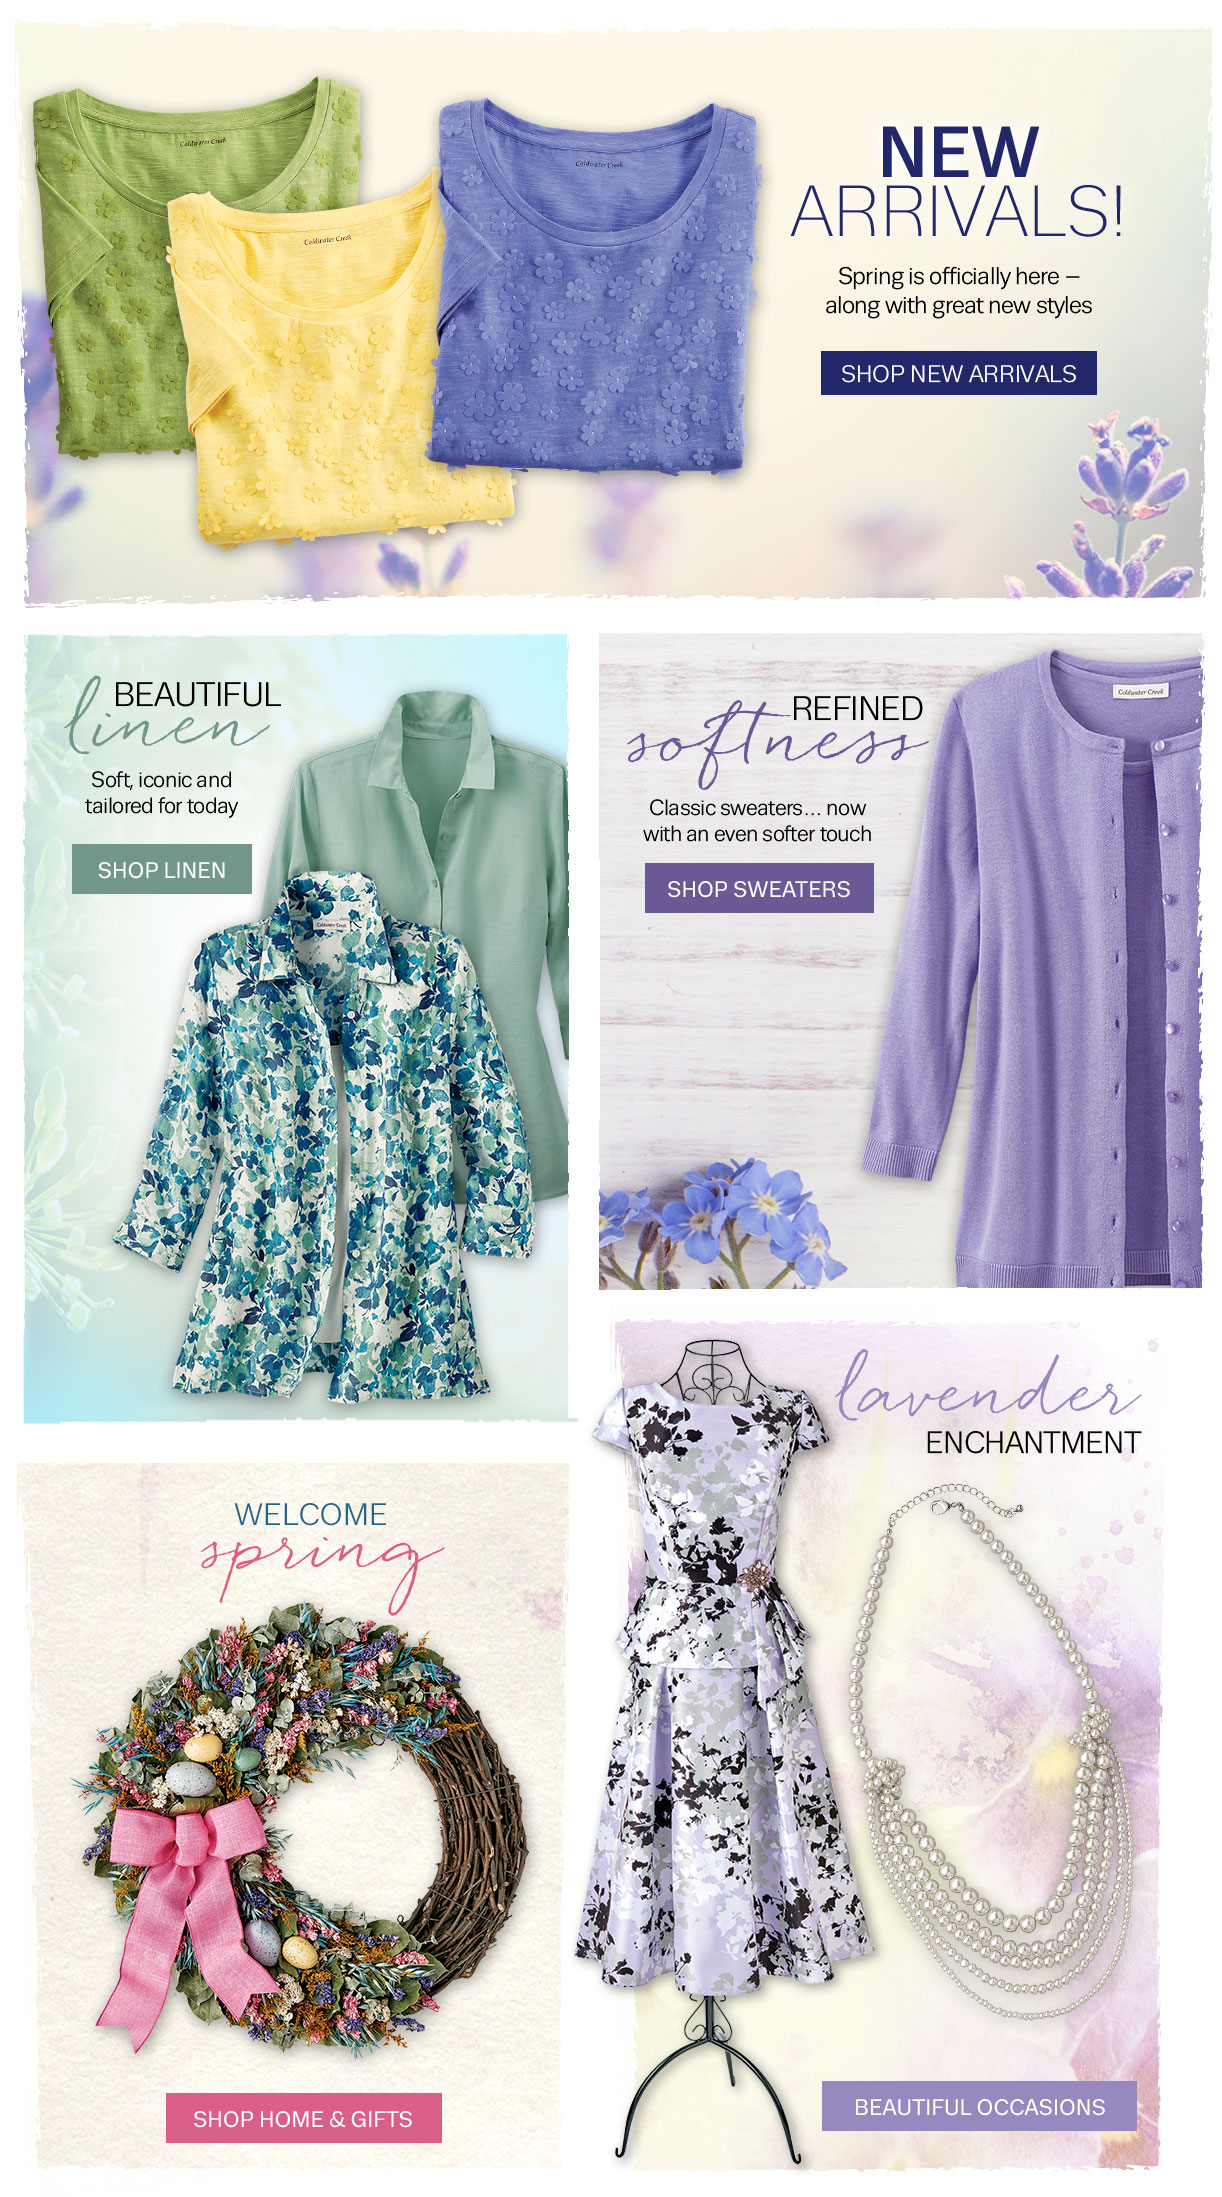 new arrivals sweaters linen home gifts beautiful occasions